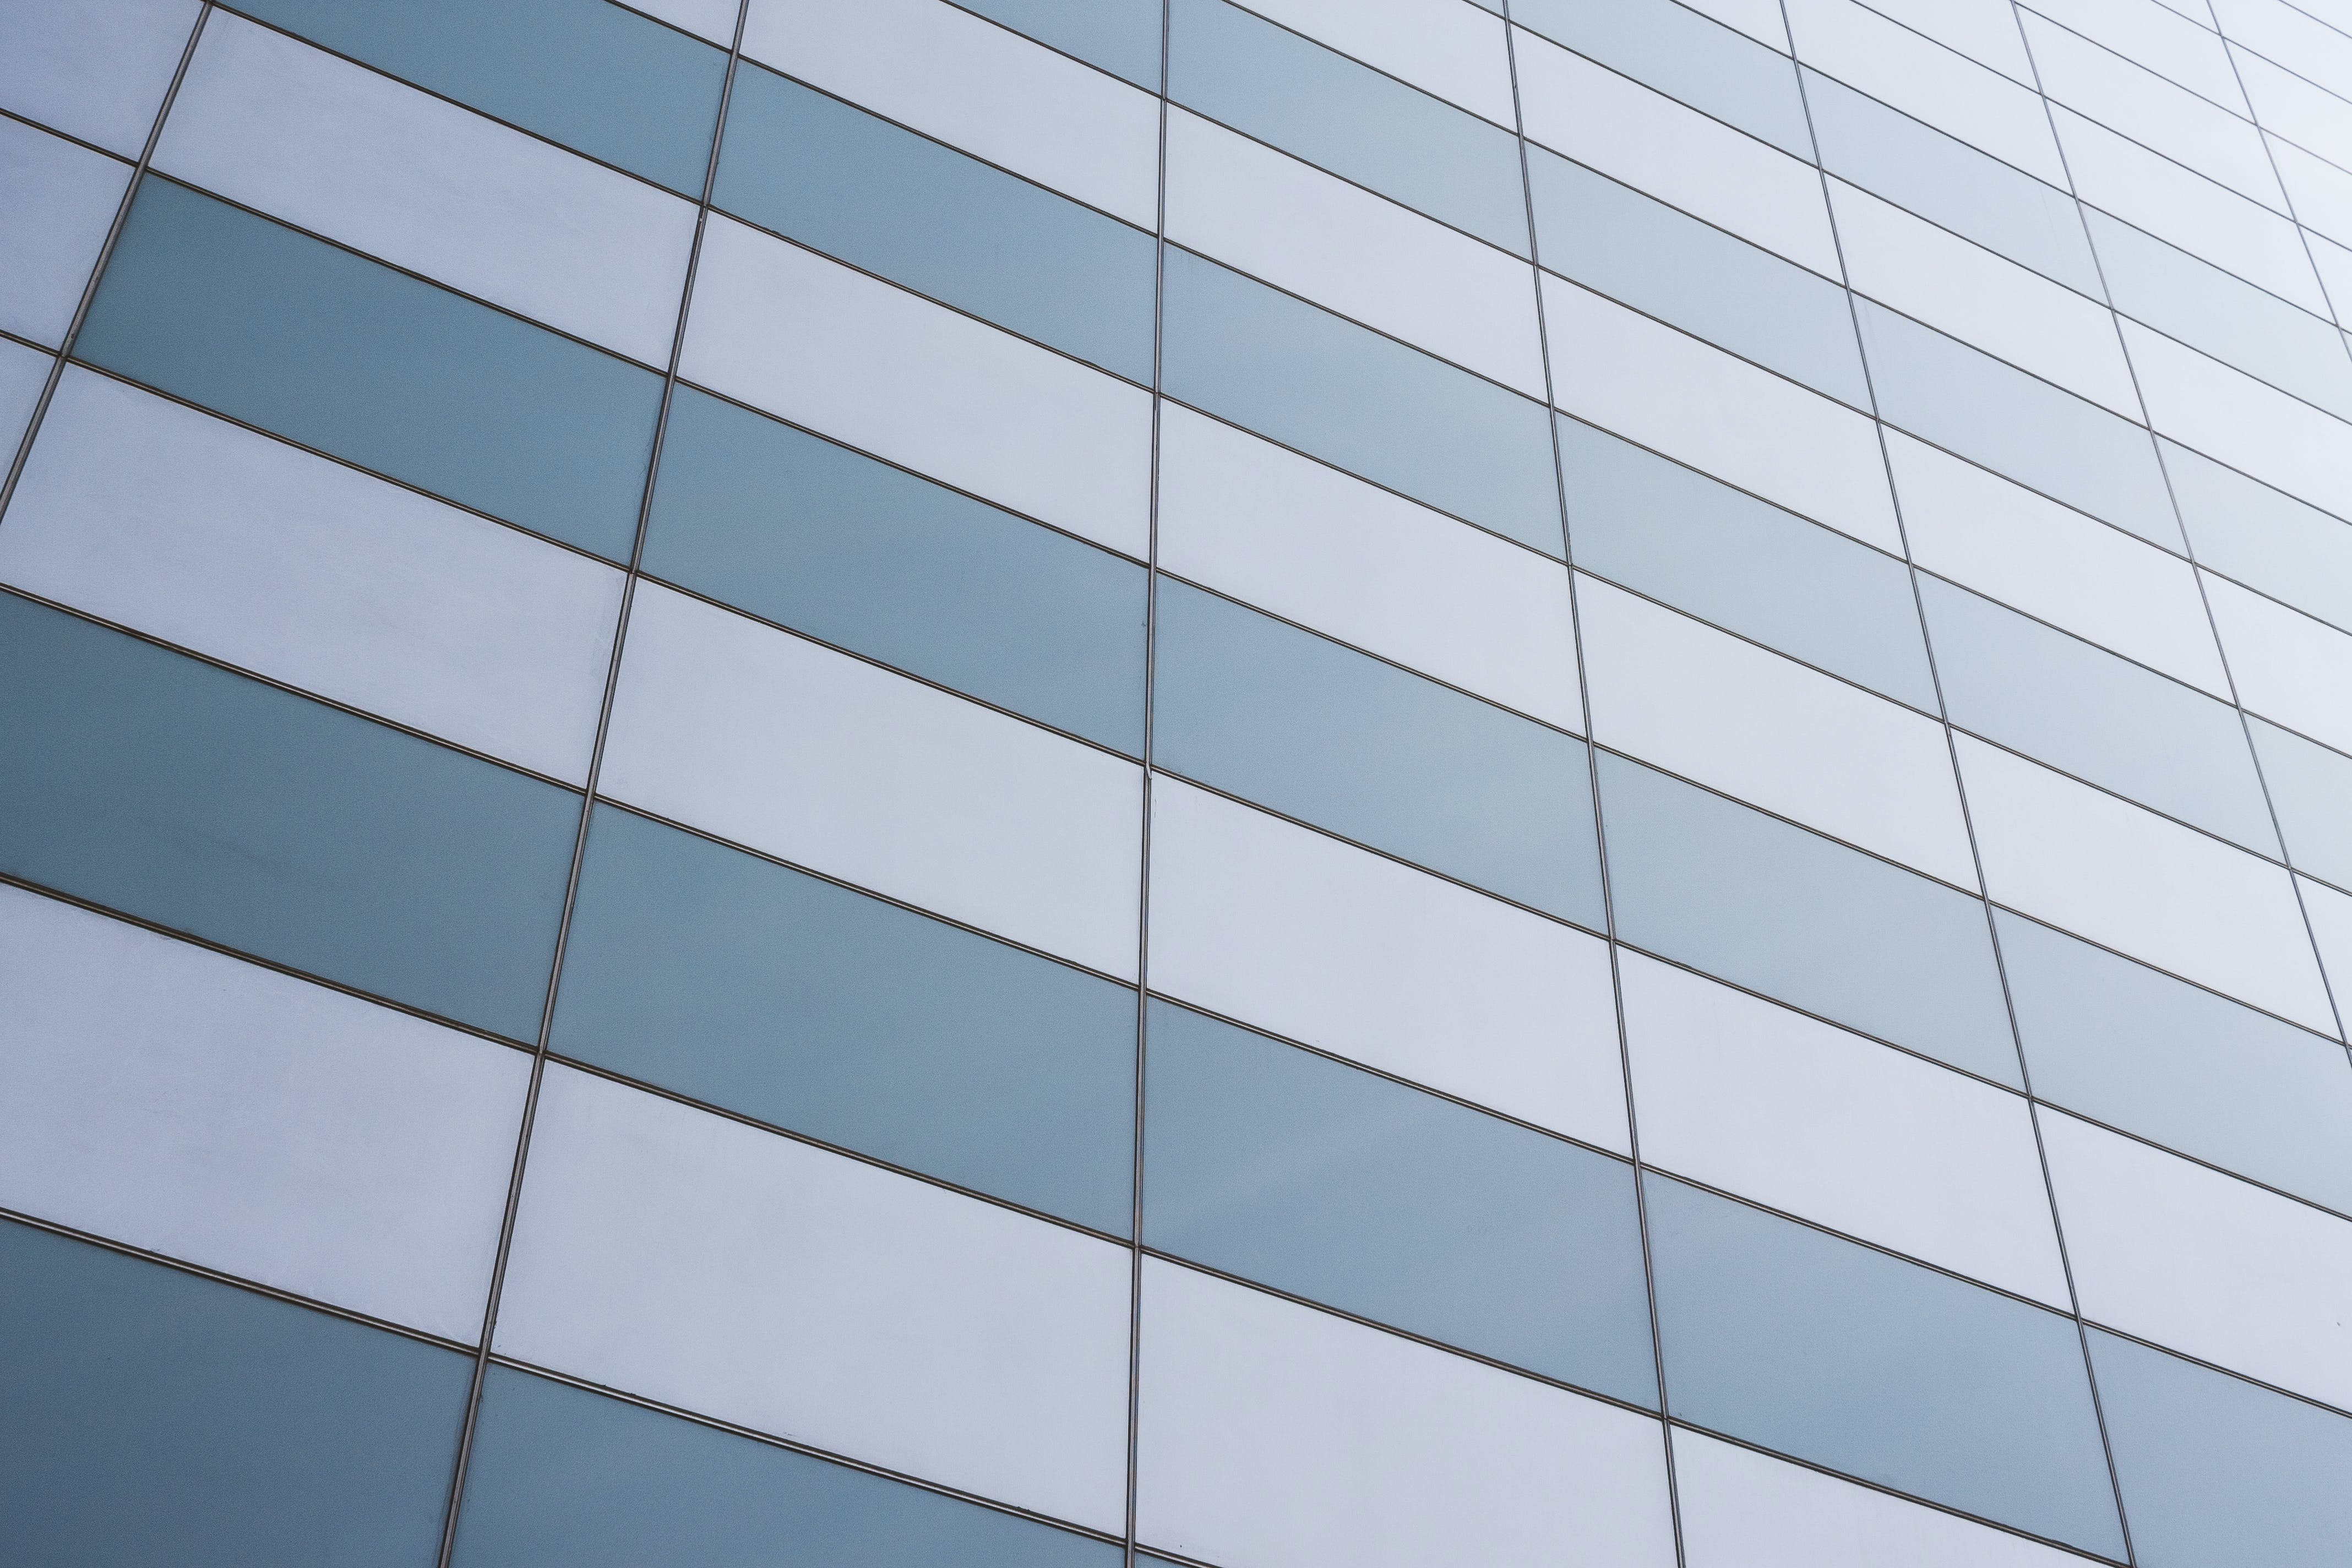 Free stock photo of building, glass, architecture, windows